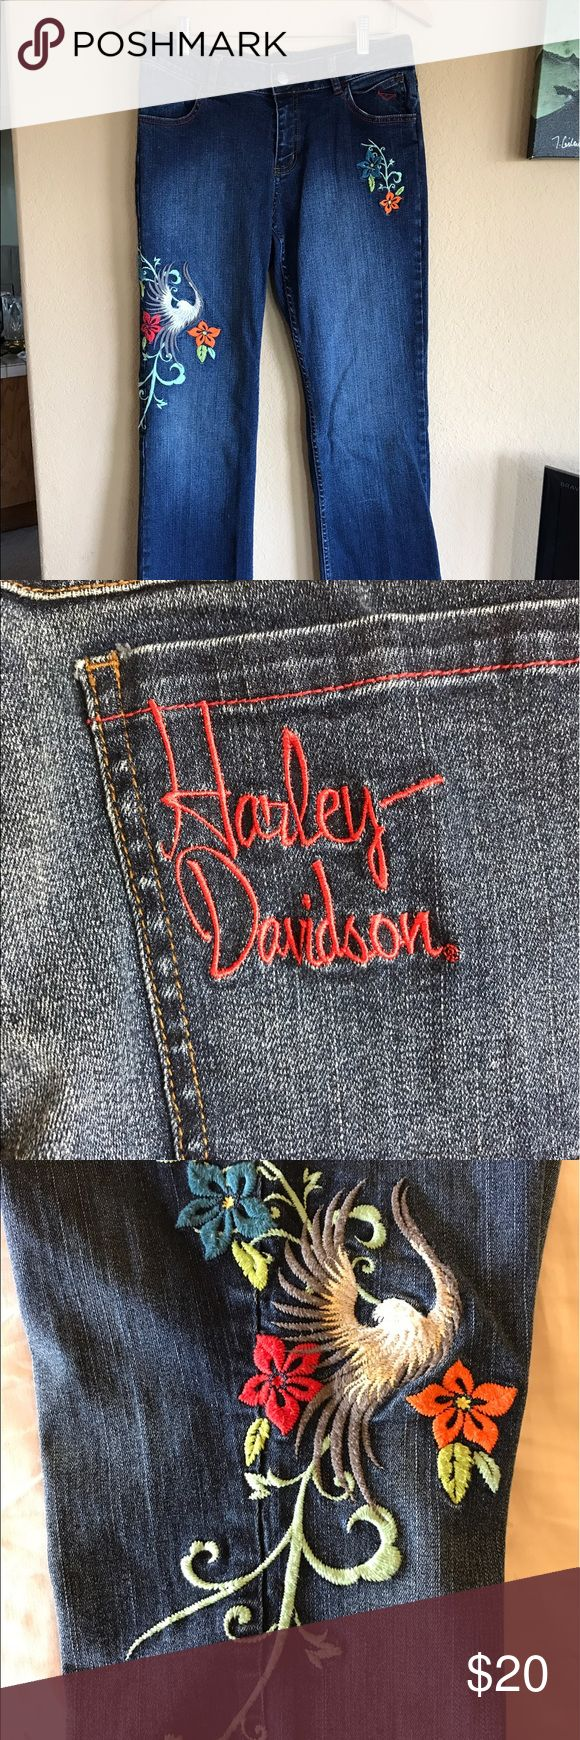 Harley Davidson embroidered jeans sz 6 These jeans are very stretchy and comfortable, may run on the larger side of size 6. Harley Davidson Jeans